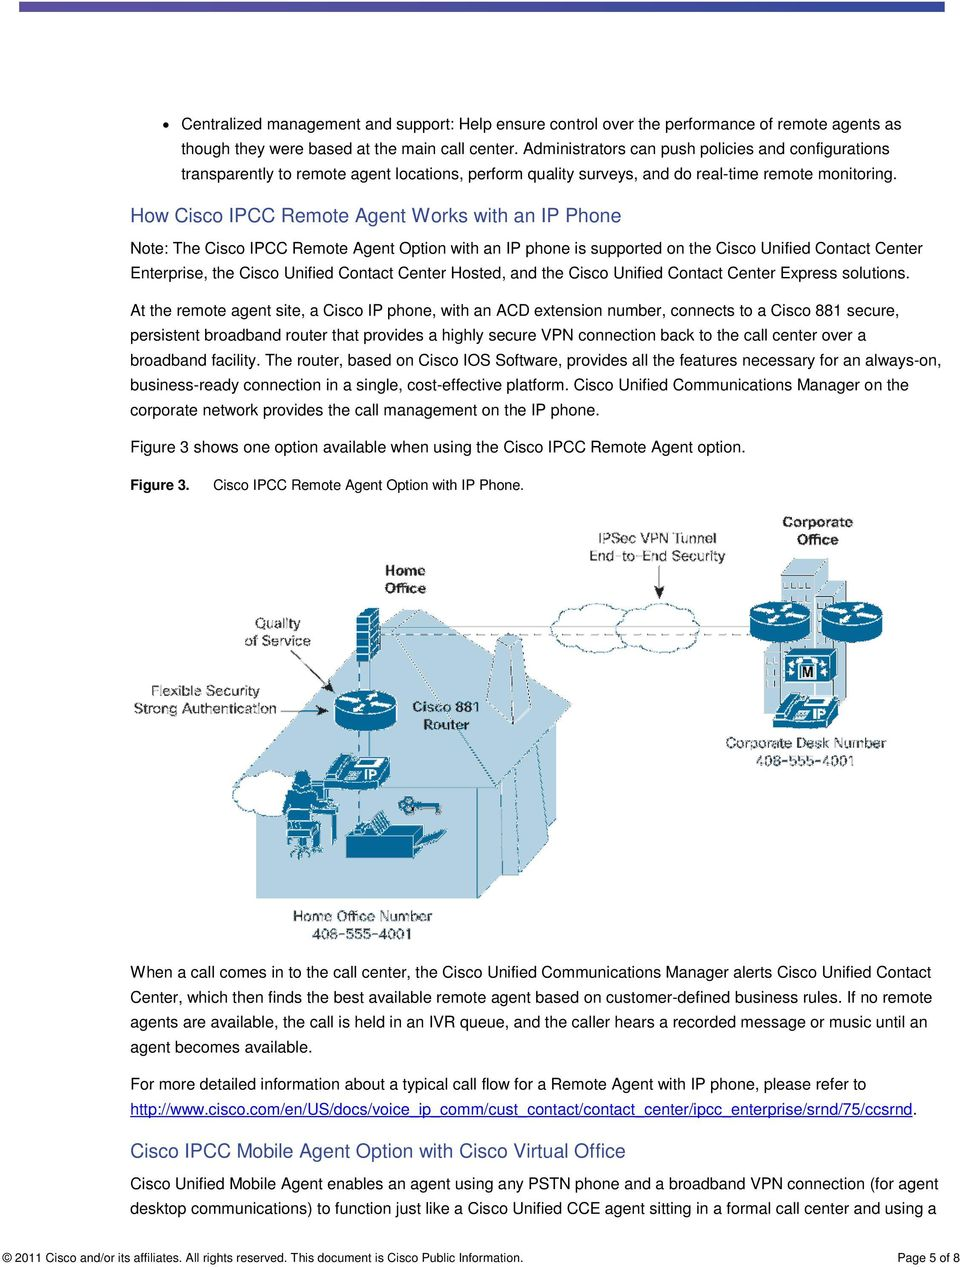 Cisco Virtual Office Unified Contact Center Architecture - PDF